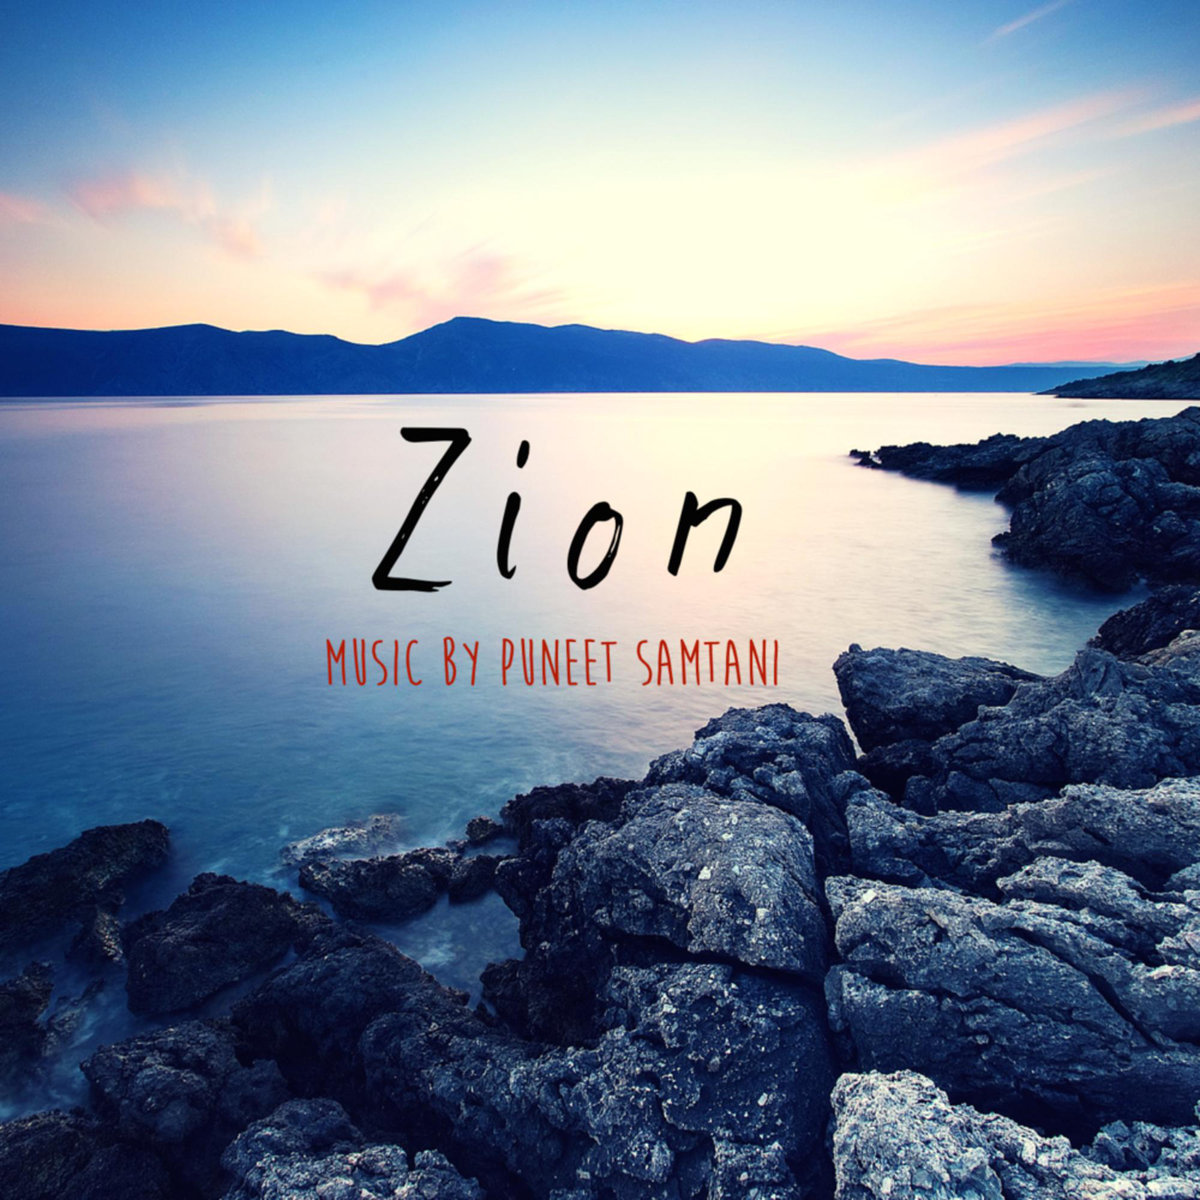 zion singles Personals are for people local to zion, il and are for ages 18+ of either sex find someone who is right for you zion  view all singles in zion.